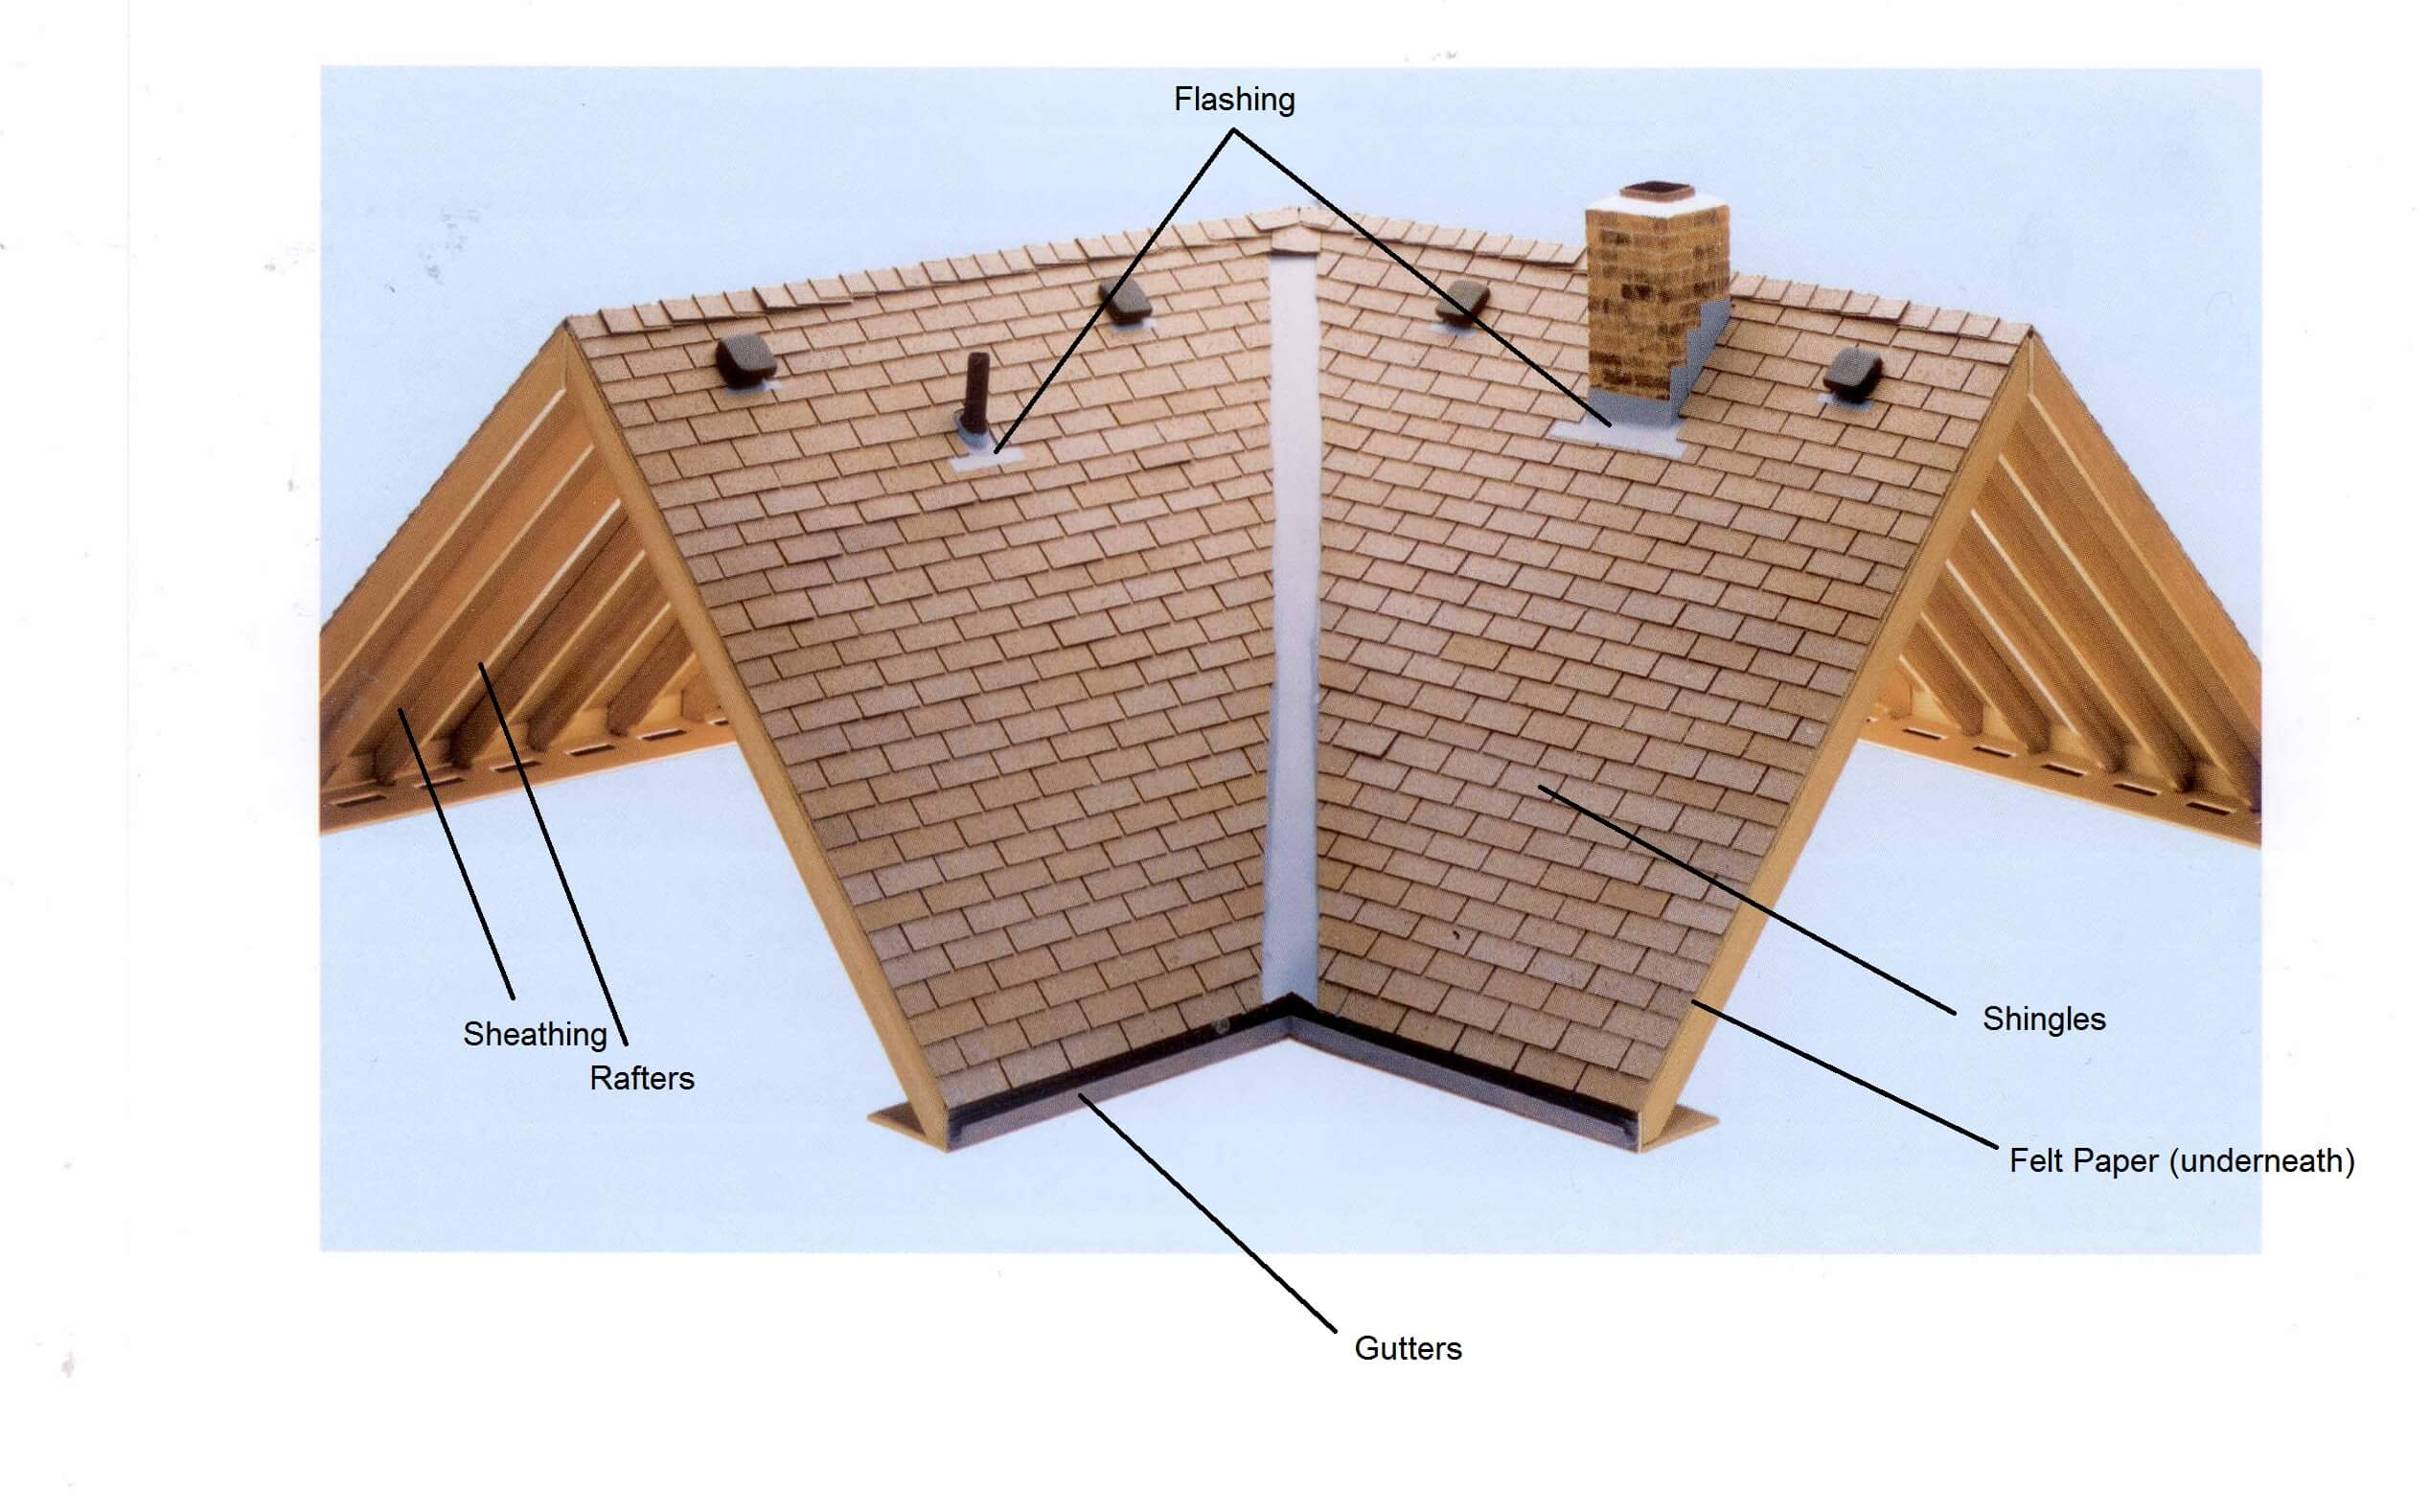 Roof James Campbell Flat Roof Components Diagram Roof Parts Labled Flat Roof  Components Diagram